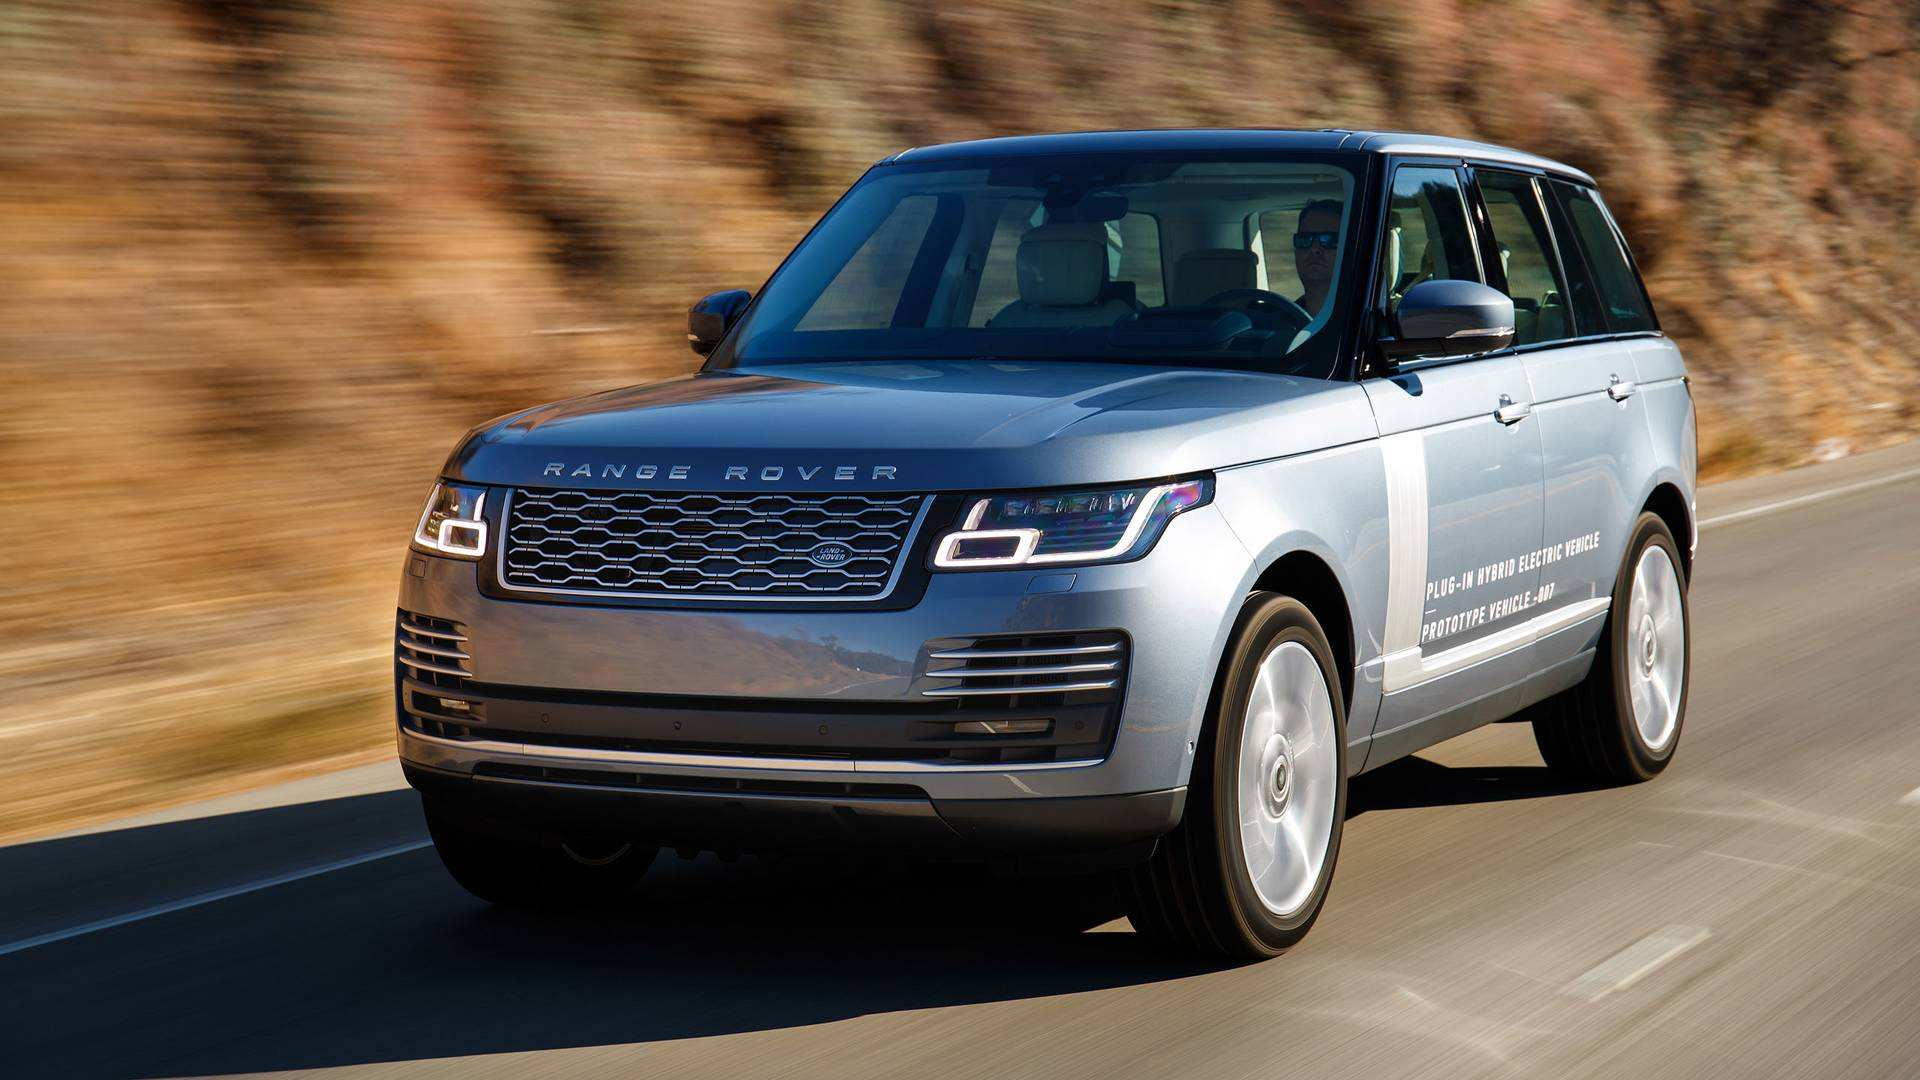 39 The Best Land Rover Range Rover Vogue 2019 Release Date